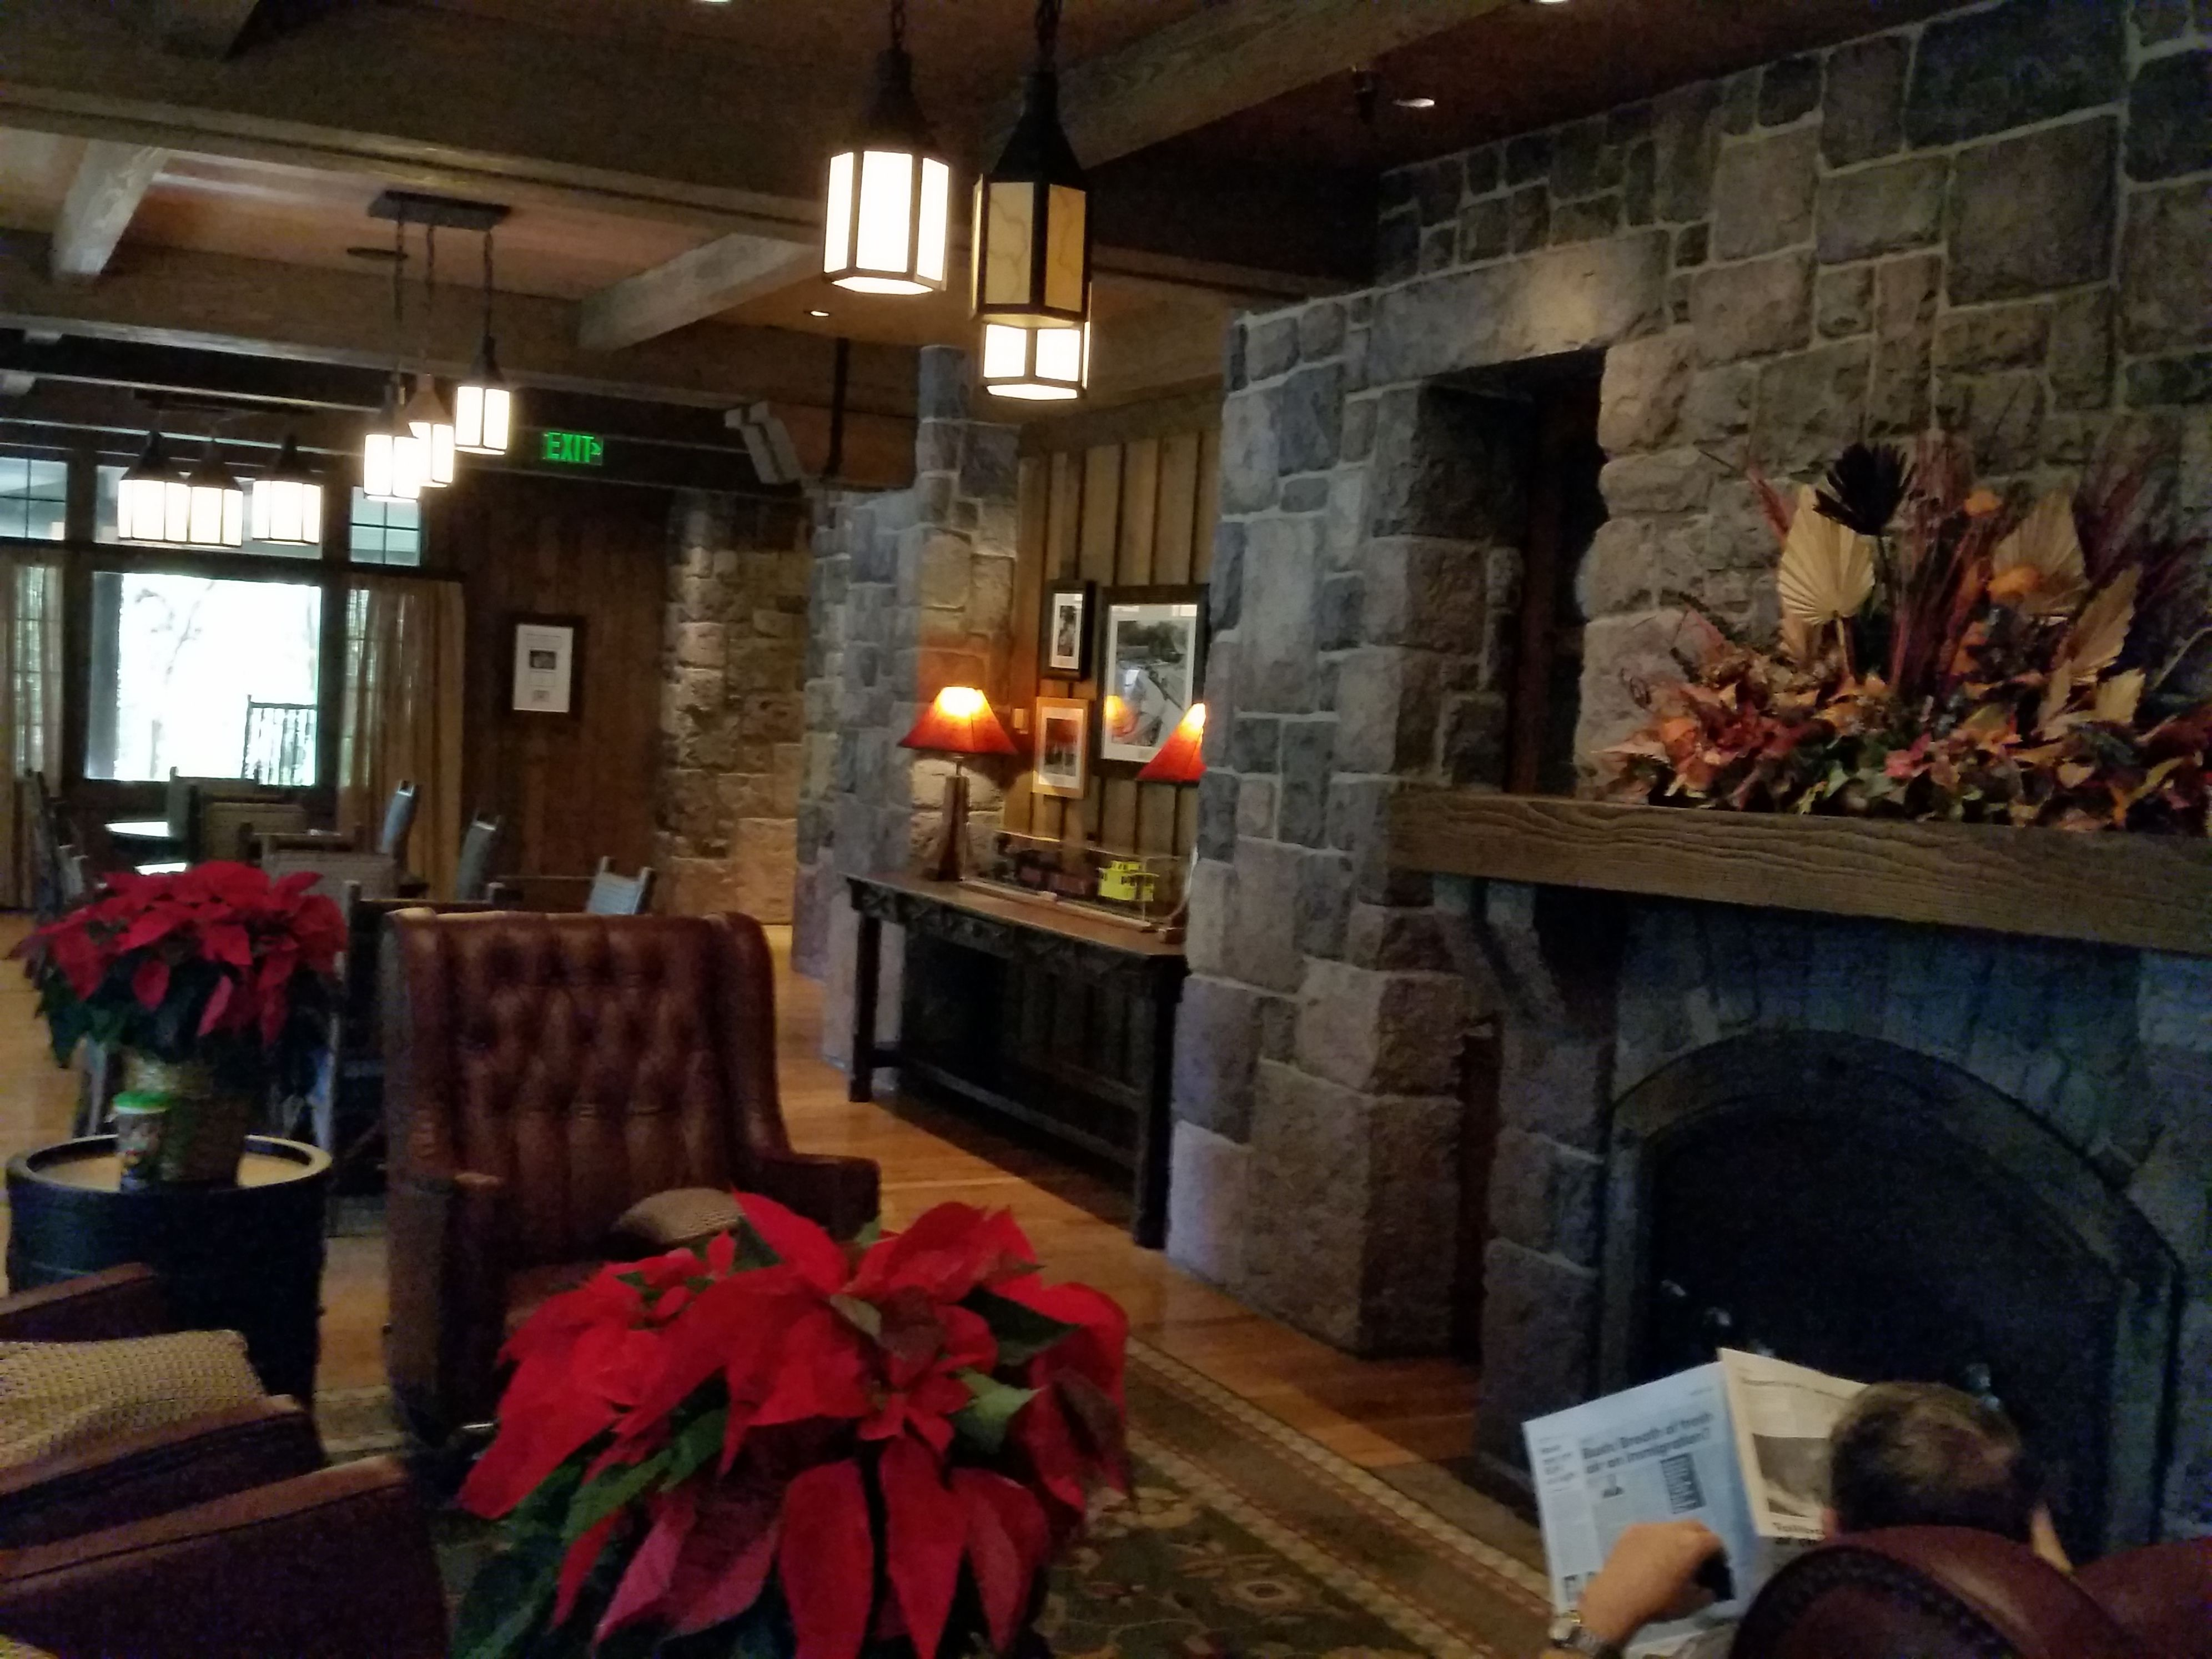 The Carolwood Pacific Room's fireplace and leather rockers at the DVC Villas at Wilderness Lodge. Rustic luxury! http://www.allears.net | #DVC #WDW #WaltDisneyWorld #LuxuryResorts #DisneyVacationClub #Holidays